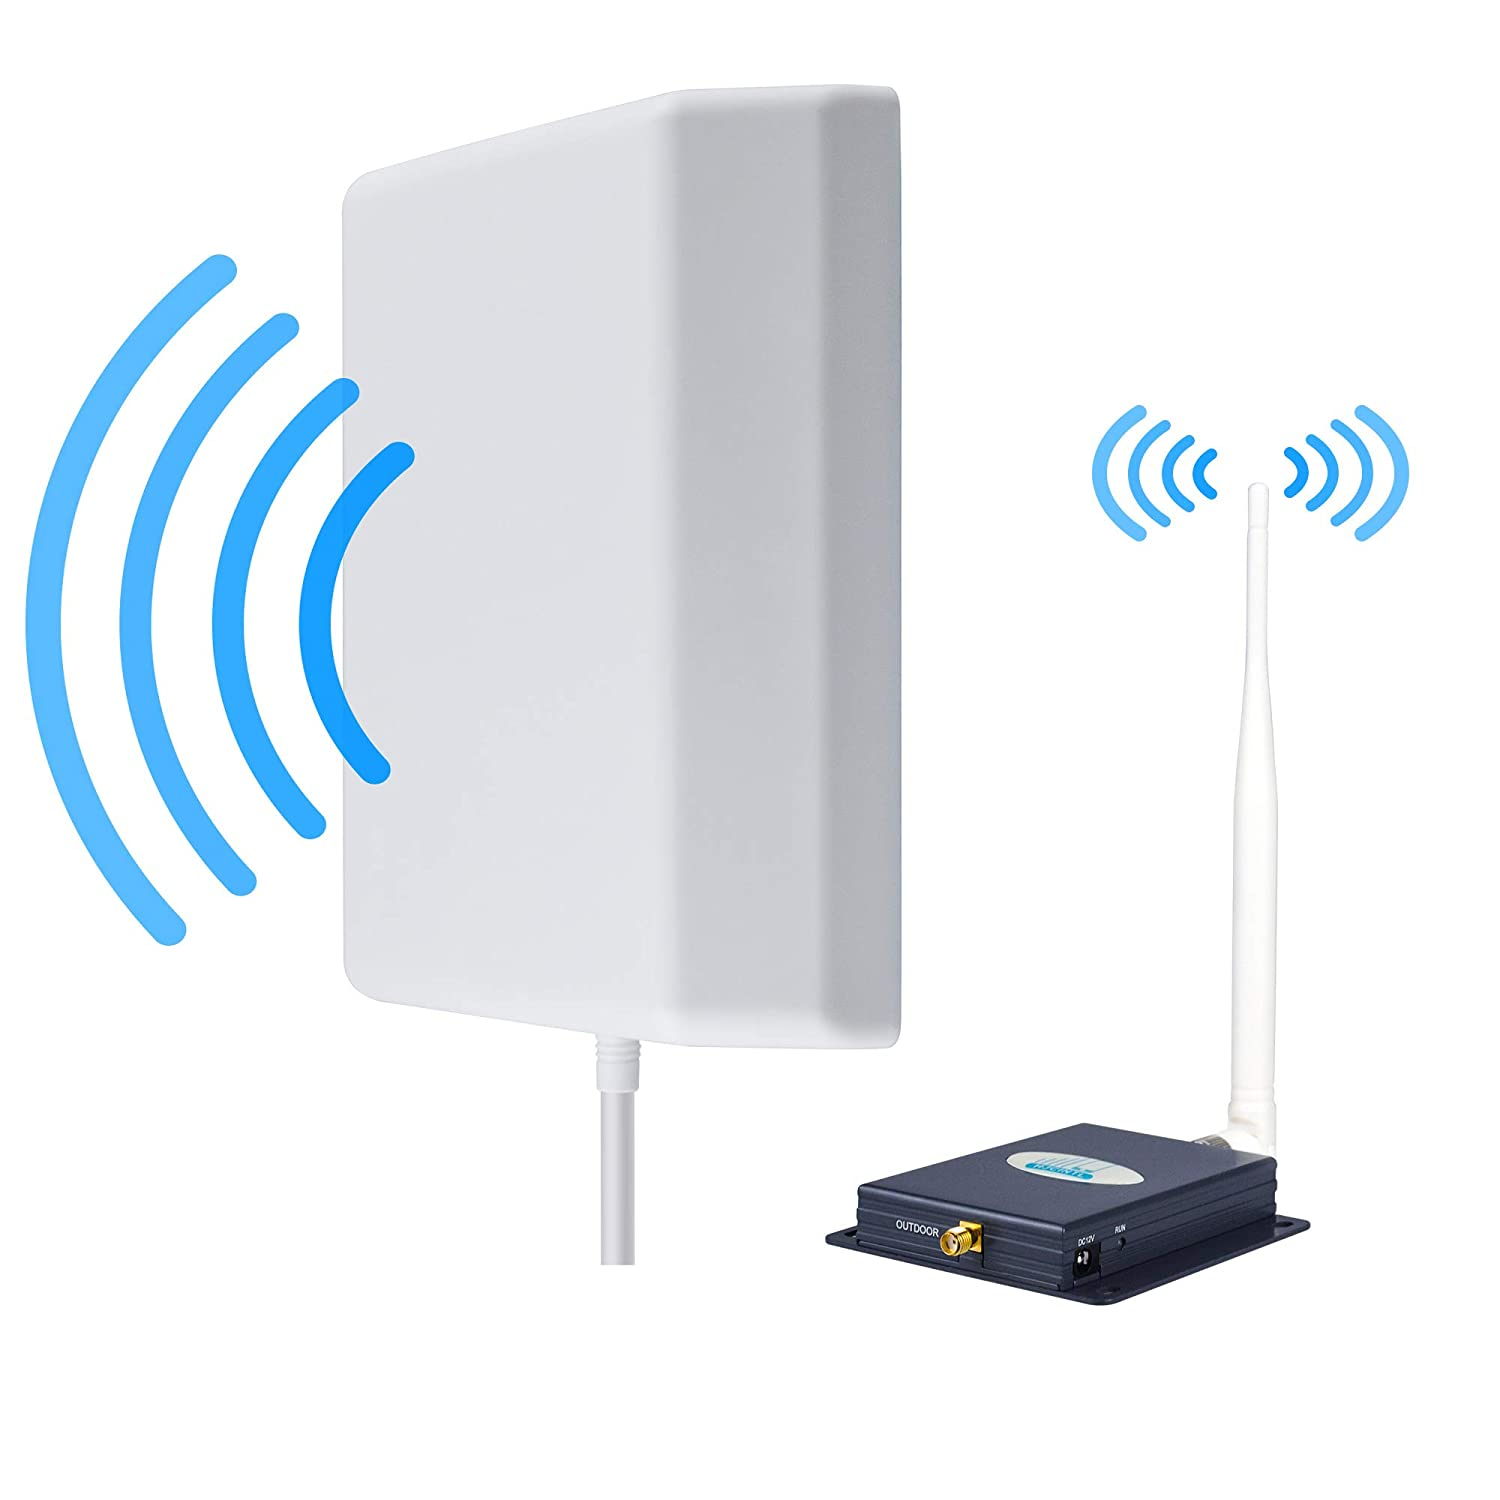 Cell Phone Signal Booster ATT 4G LTE Cell Booster HJCINTL Band12//17 Cell Phone Signal Amplifier Mobile Phone Signal Repeater Booster Kits with Ceiling//Panel Antennas